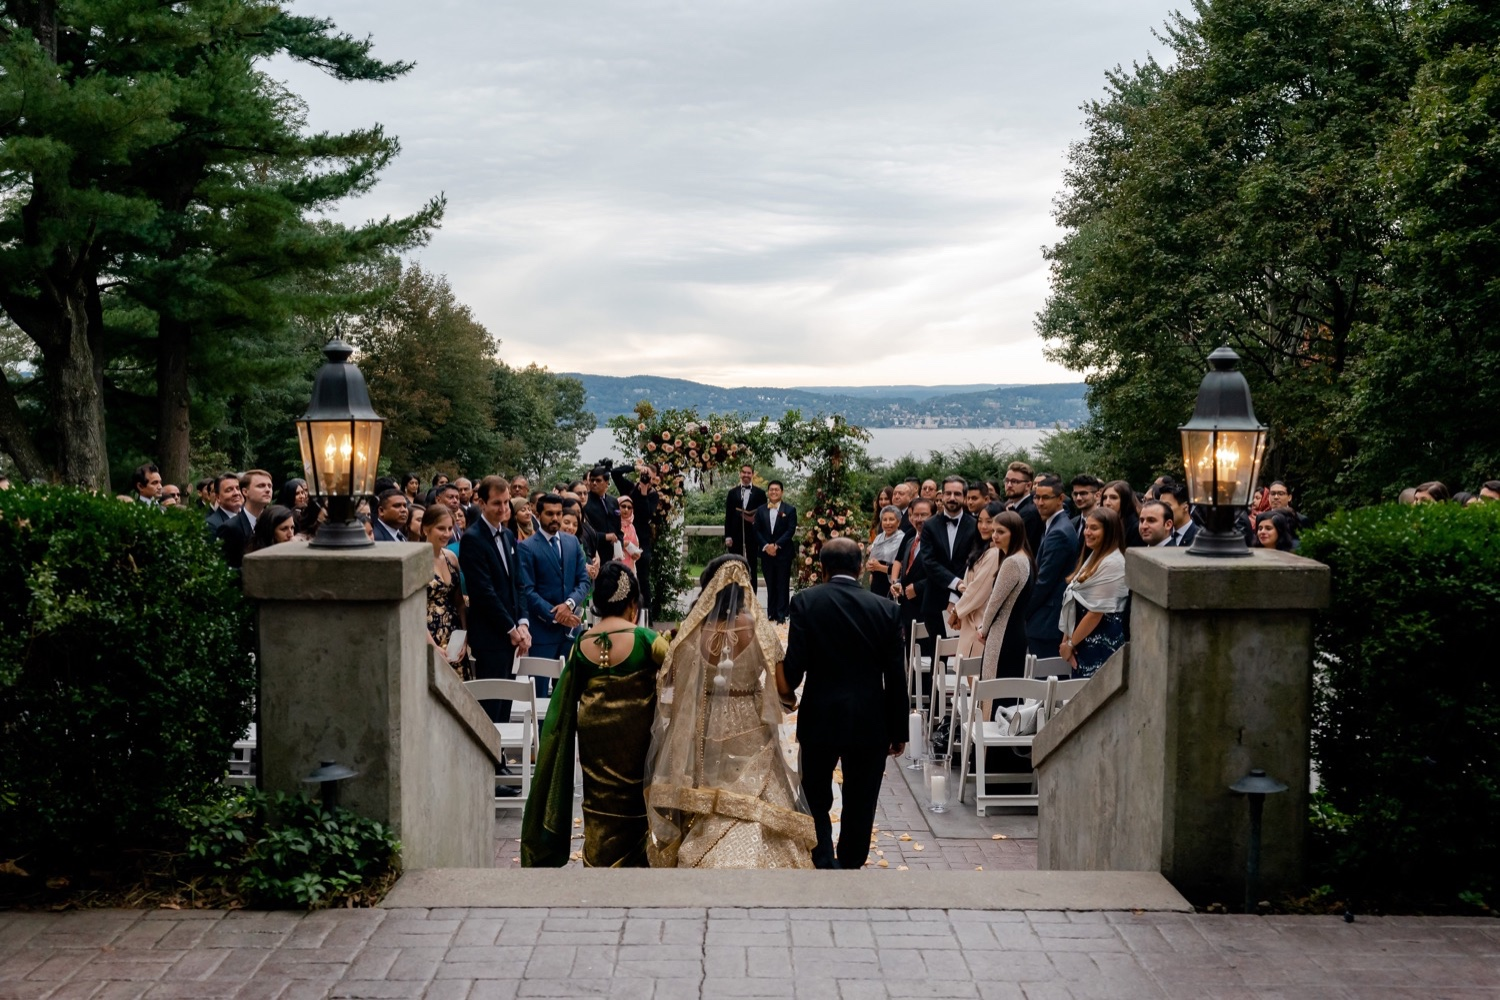 A groom and a whole wedding guests watching a bride coming into the wedding ceremony at the Tappan Hill Mansion.